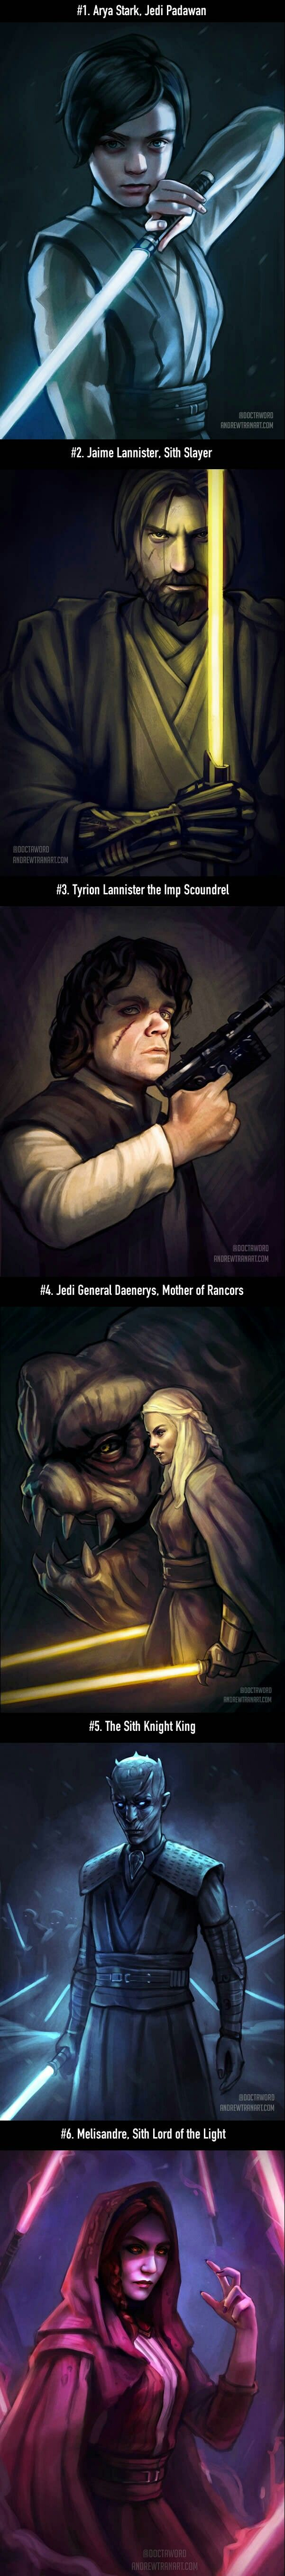 I might have actually watched Star Wars if this was the case.